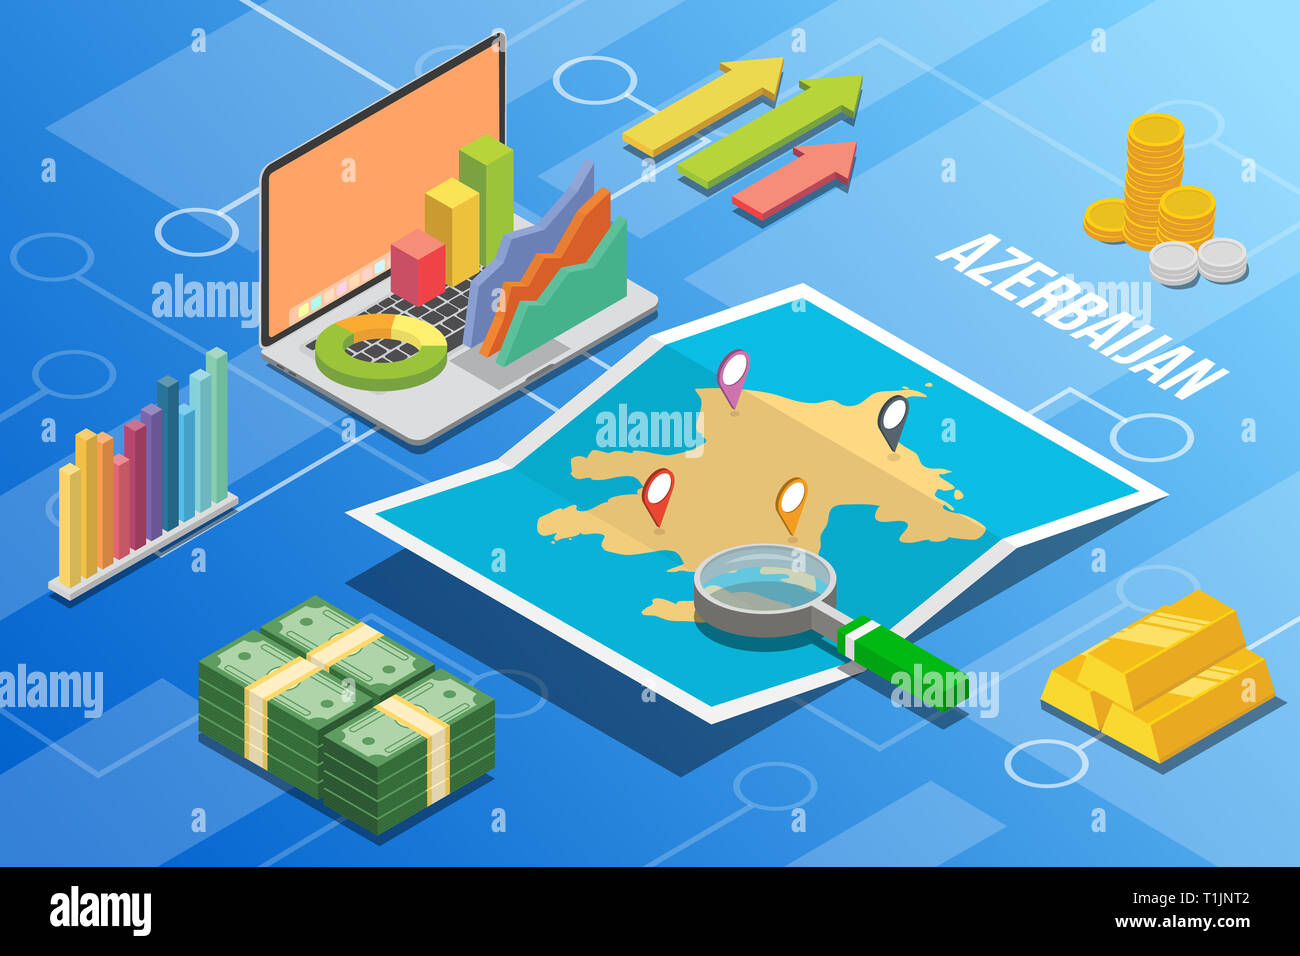 azerbaijan eurasia isometric business economy growth country with map and finance condition - vector - Stock Image